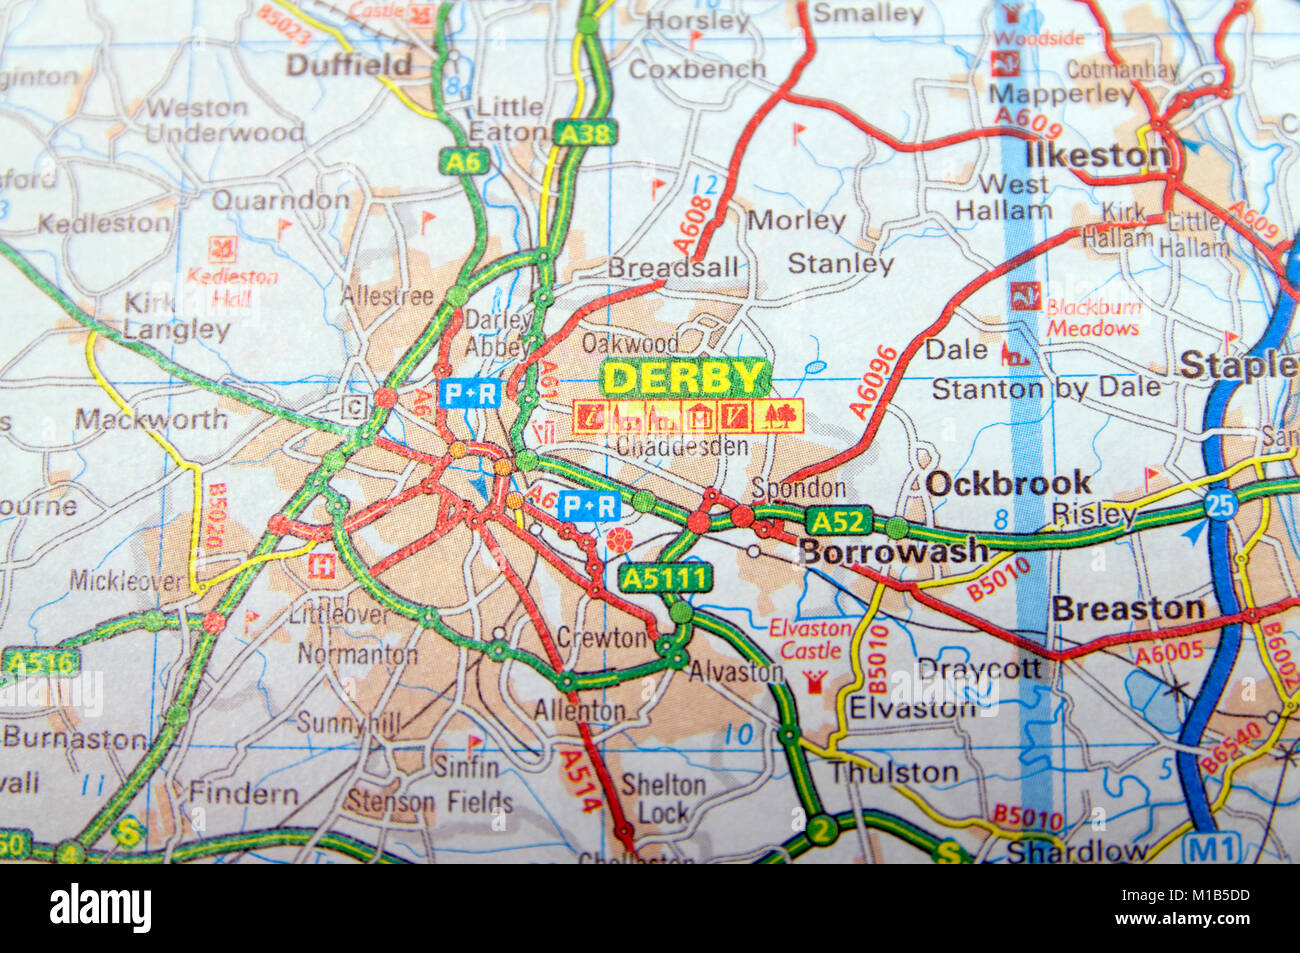 Road Map Of Derby England Stock Photo 172964105 Alamy